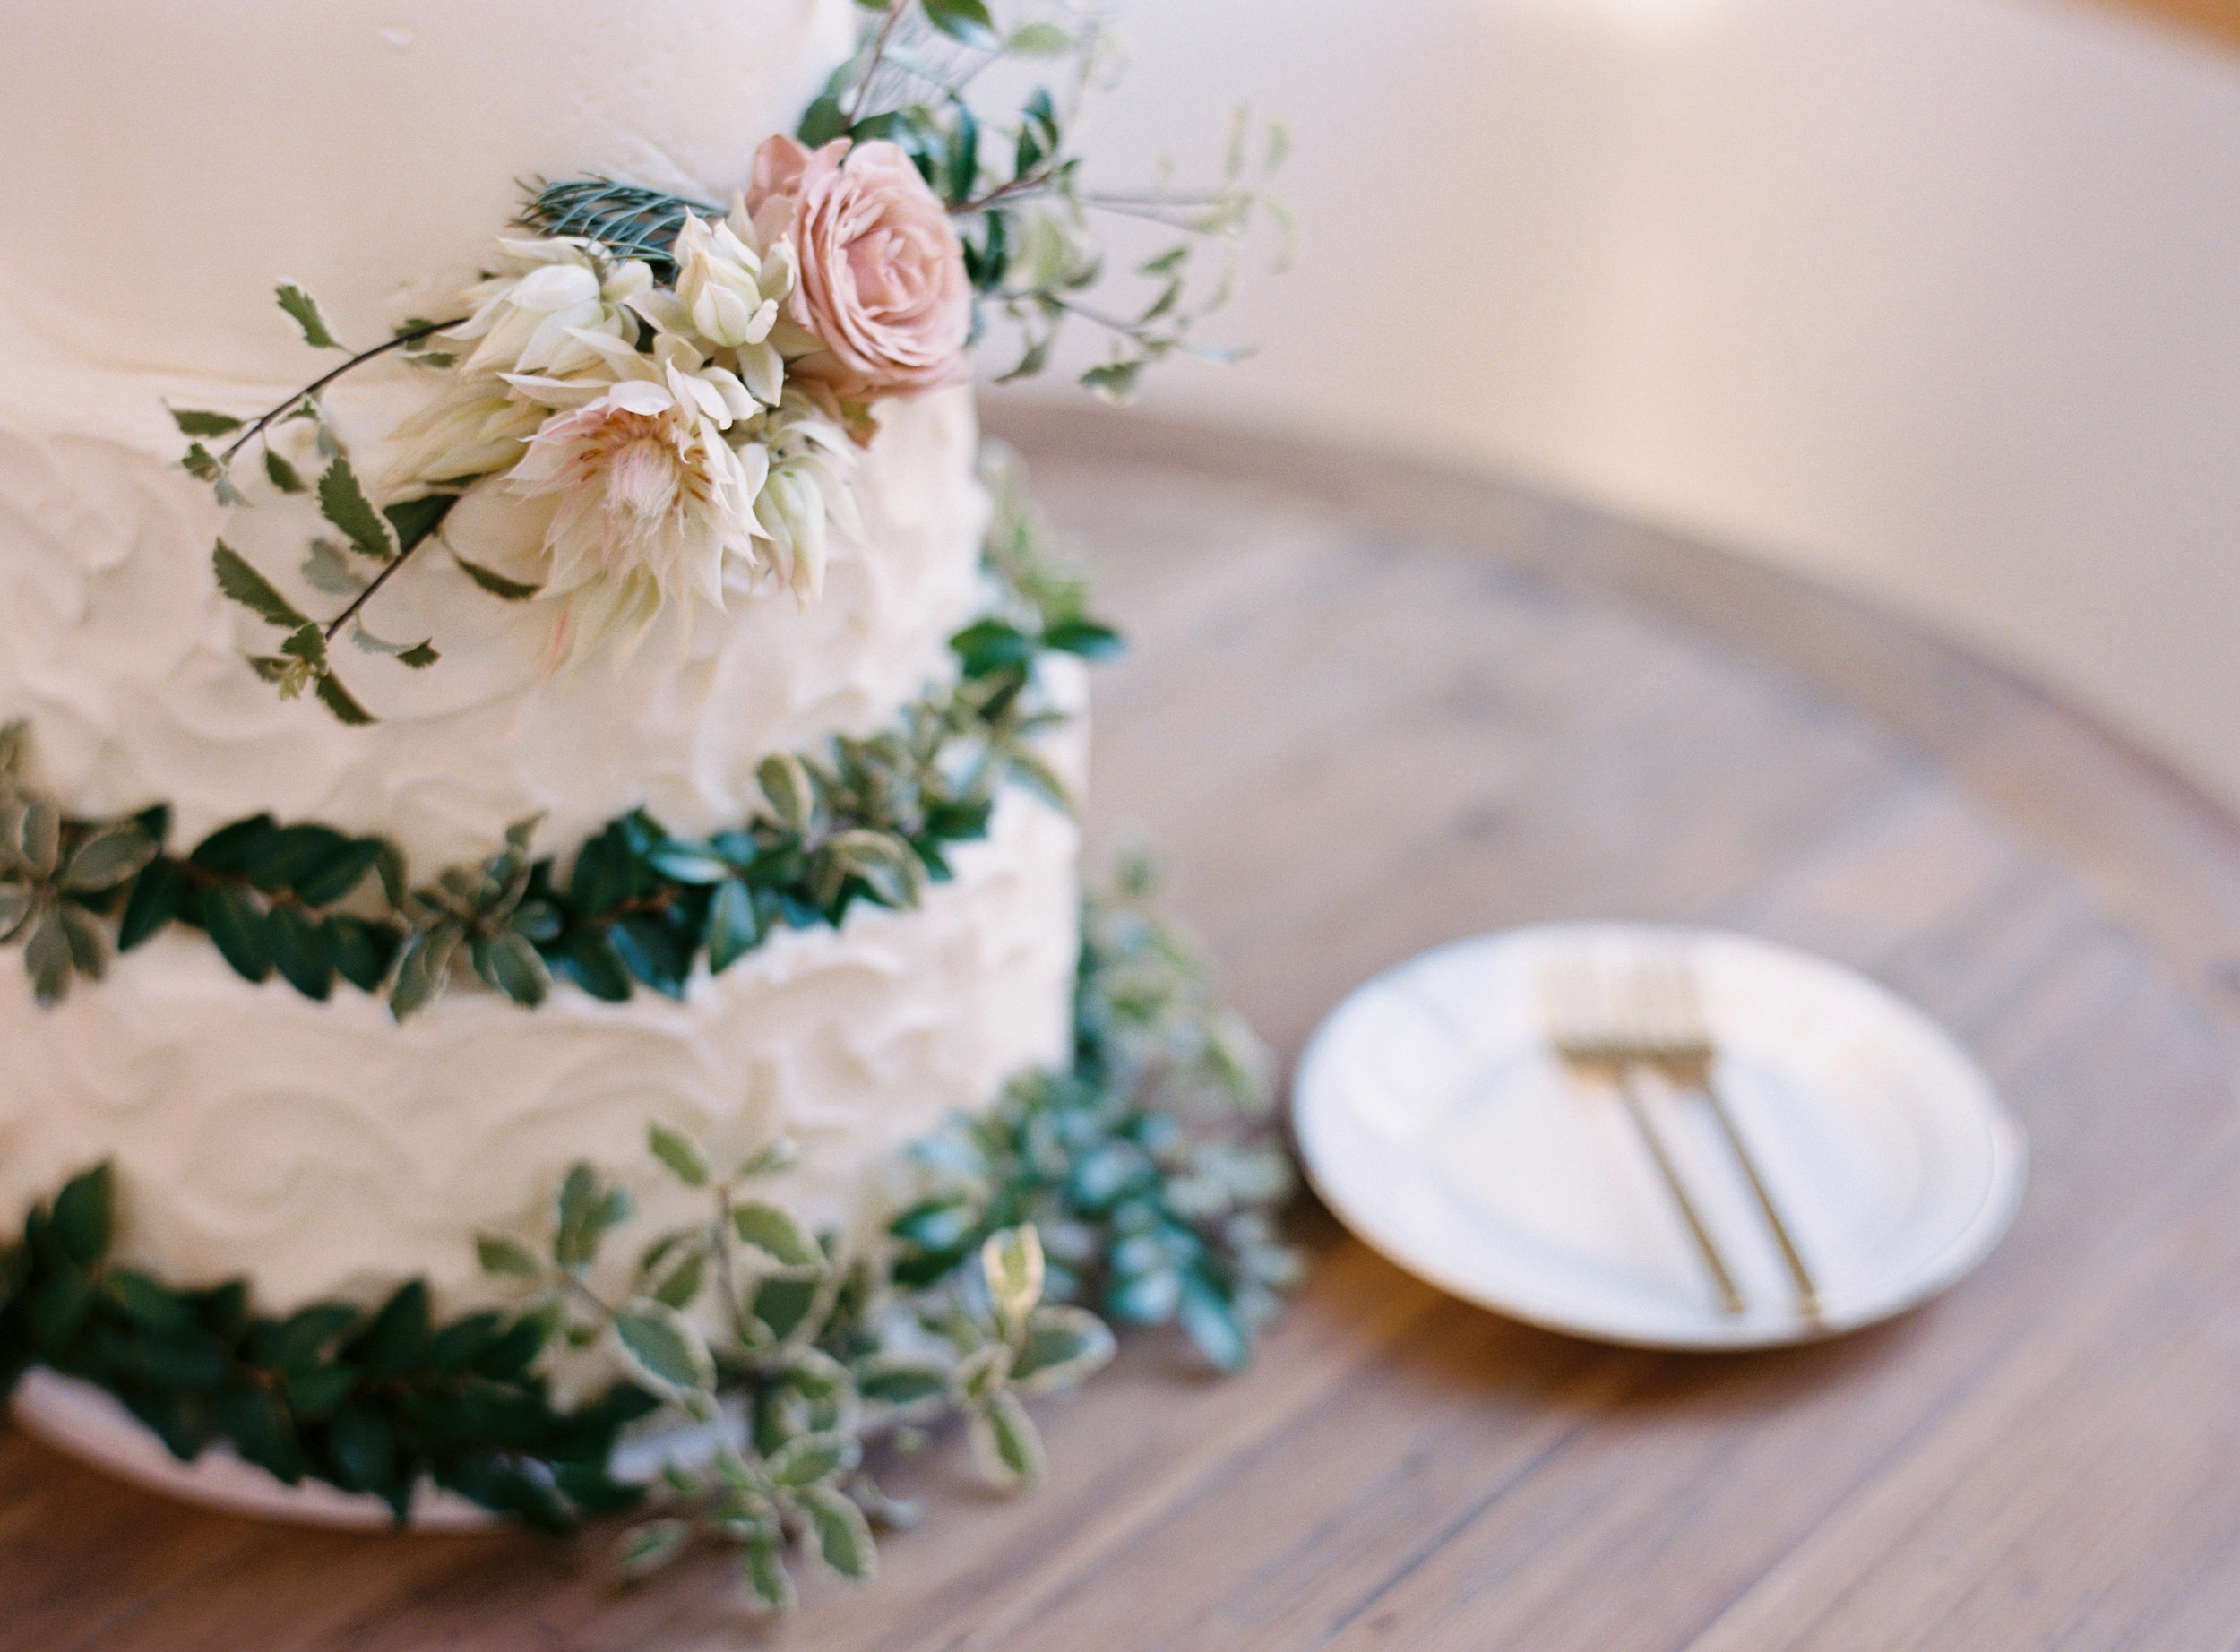 Bride's cake with greenery and floral accents // Nashville Wedding Florist